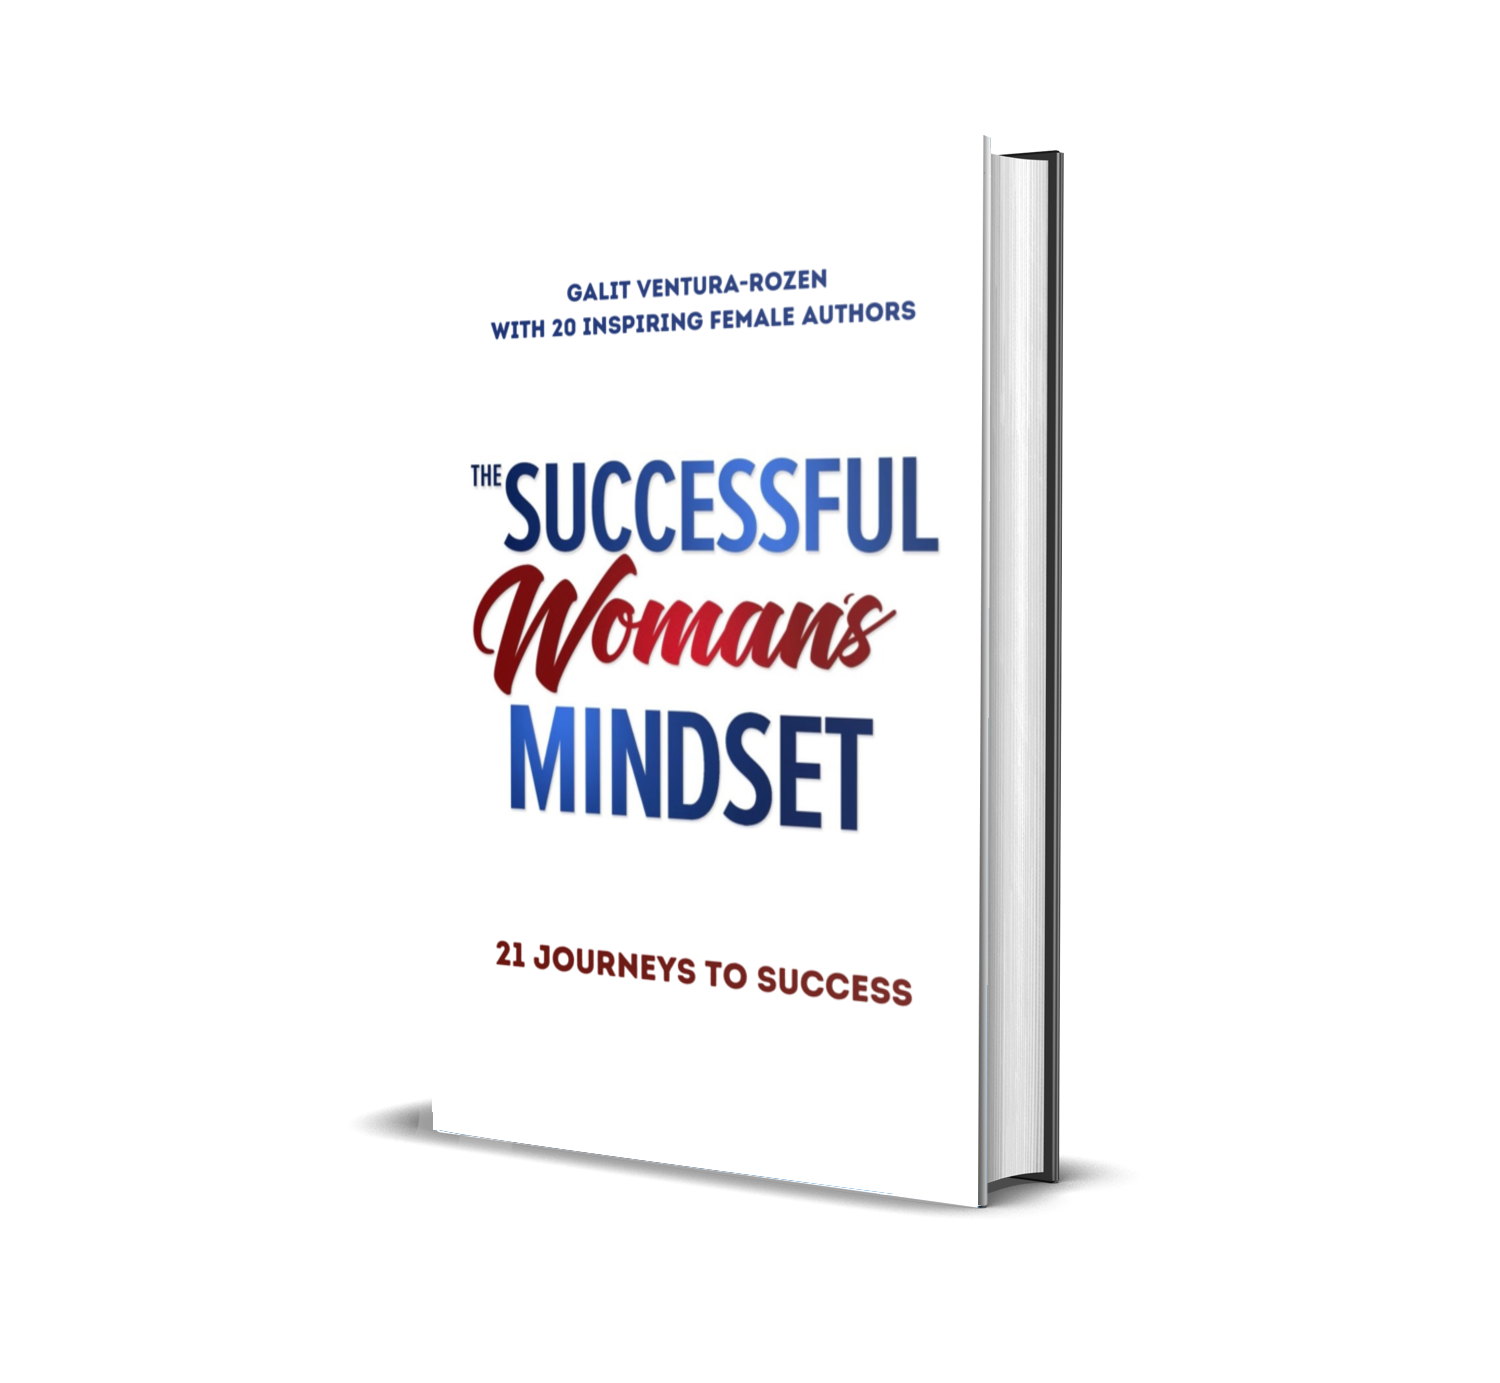 The Successful Women's Mindset